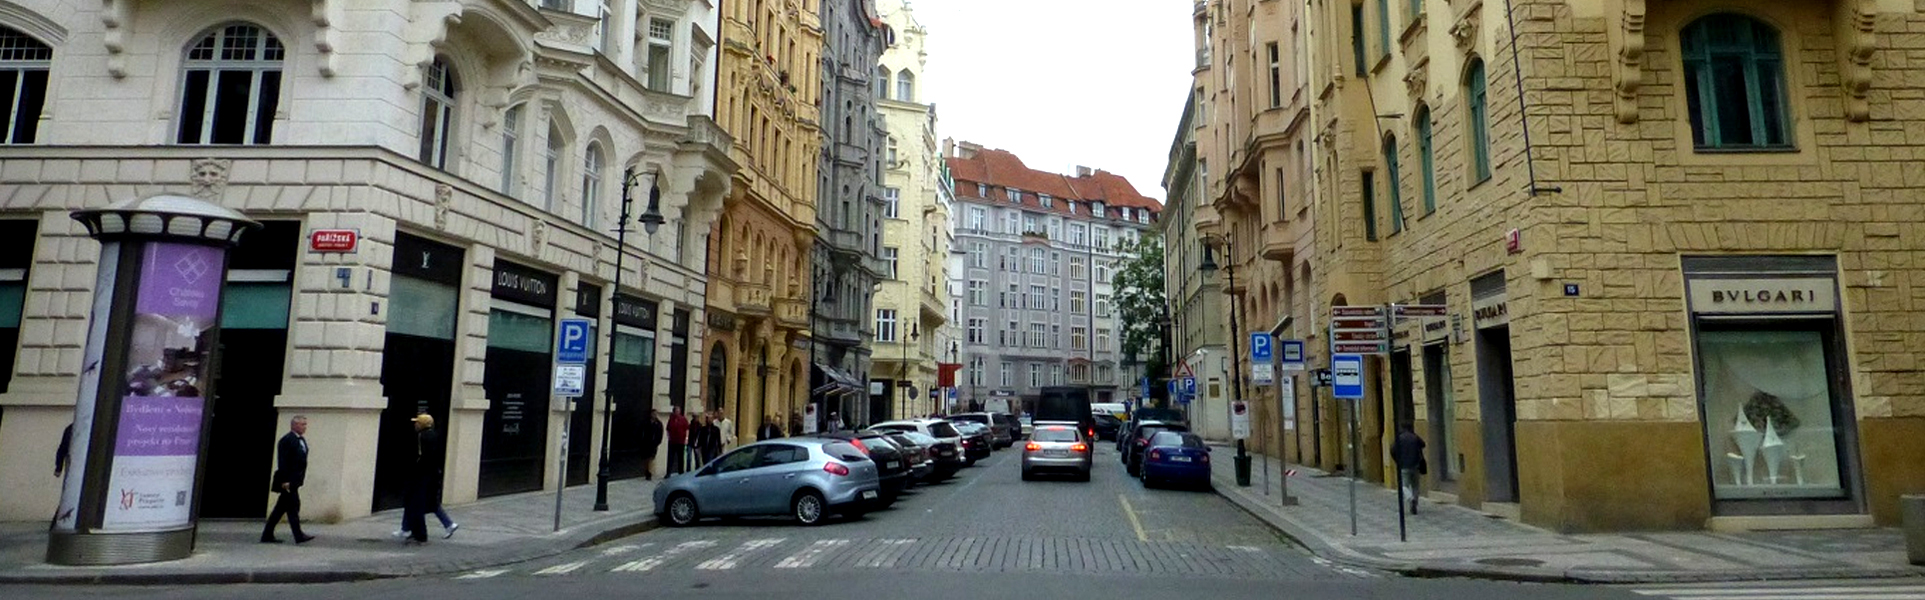 prague-jewish-quarter-blog